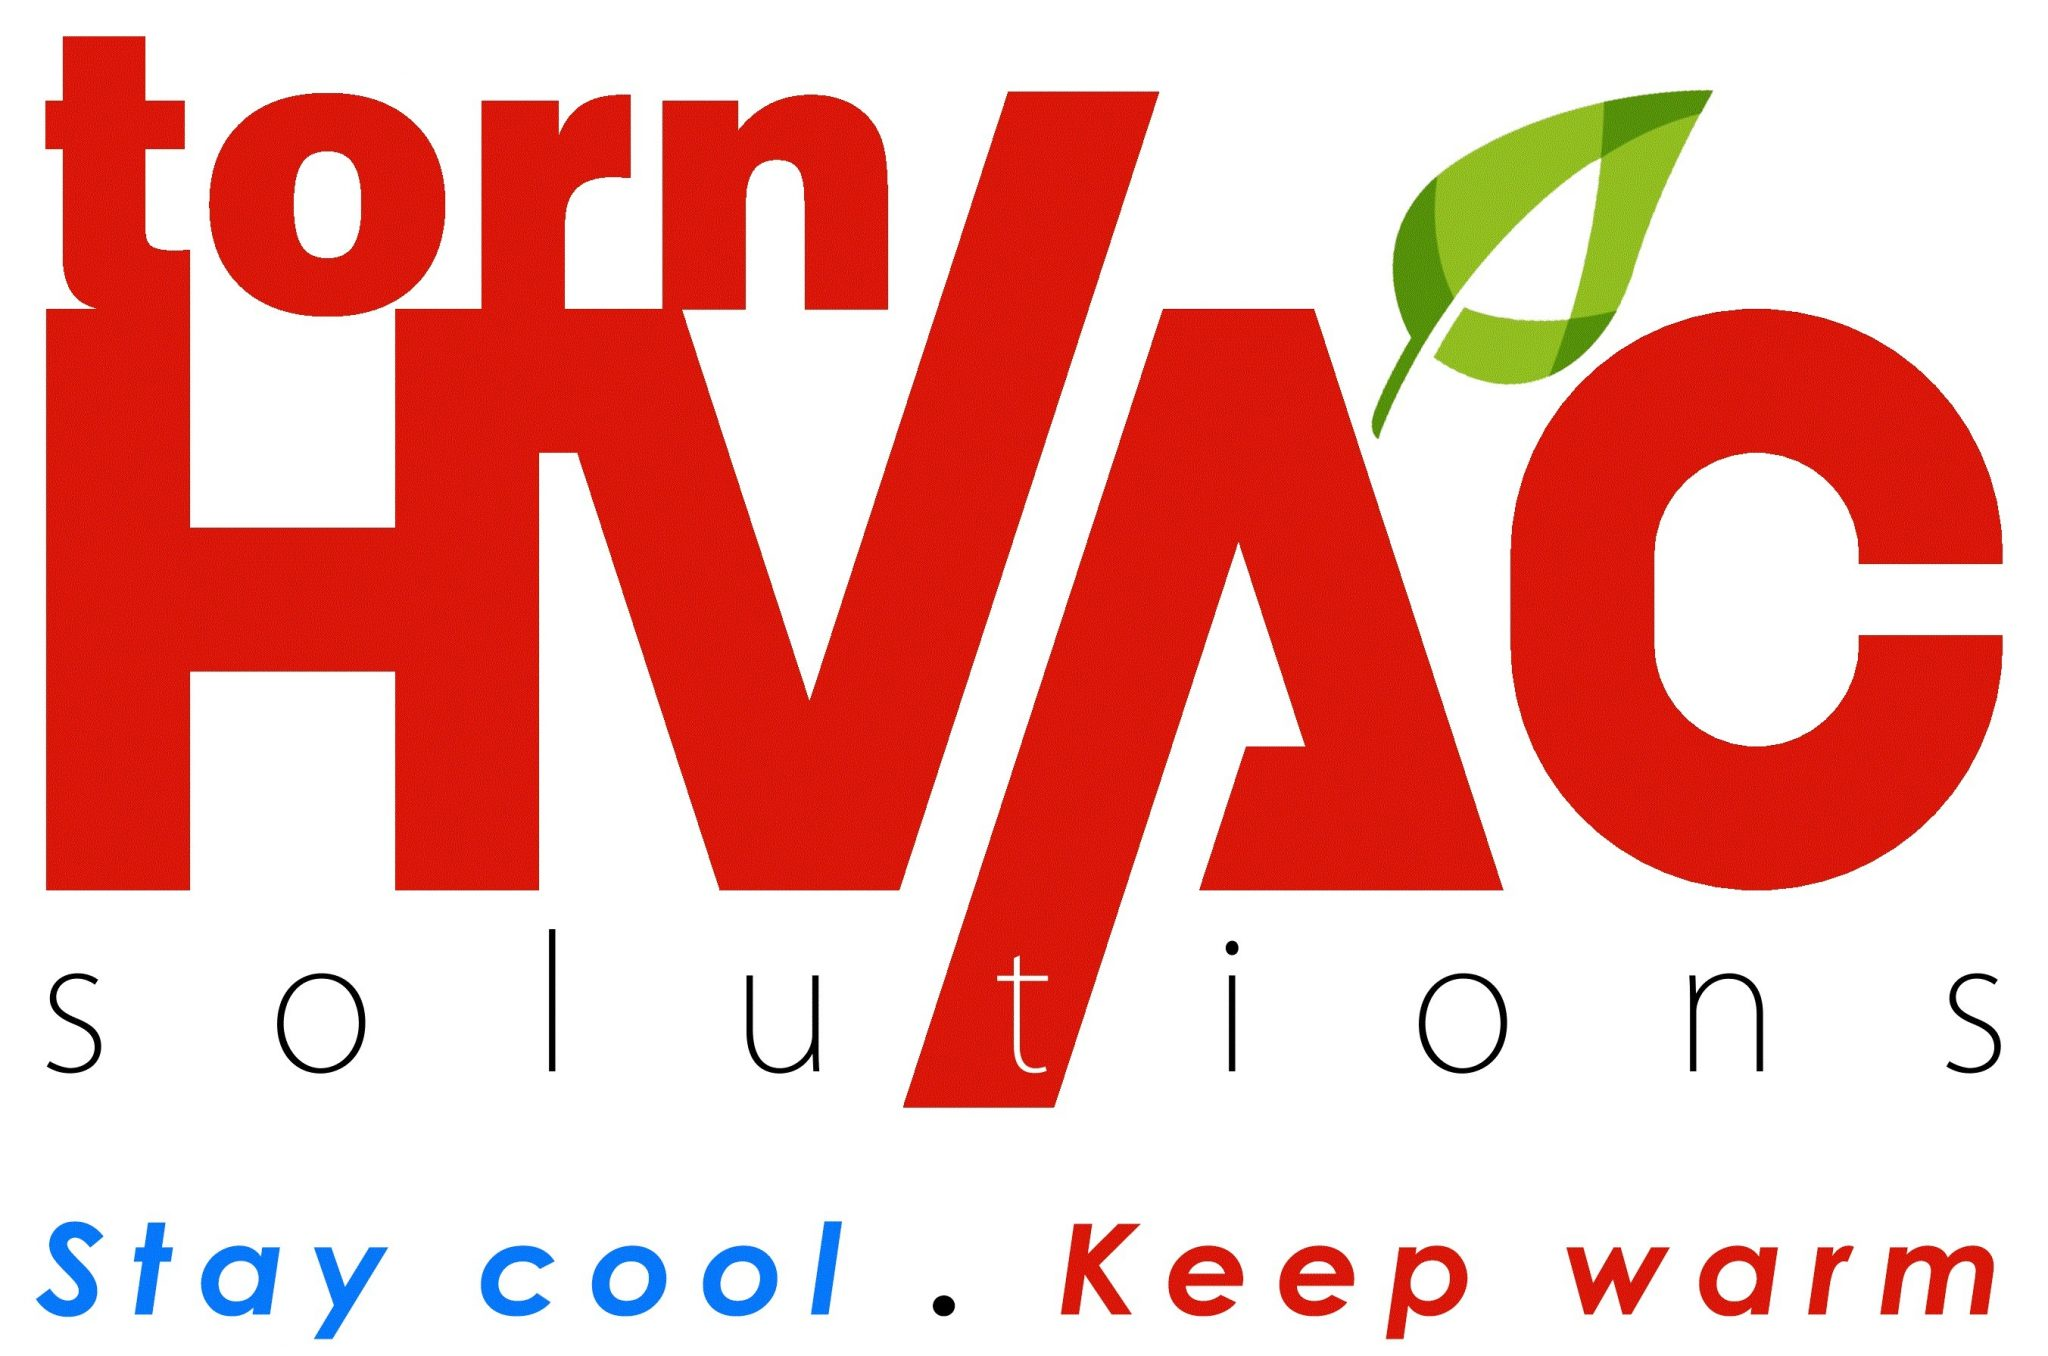 Torn Hvac Solutions,leader in climatizare,pomope de caldura si aer conditionat